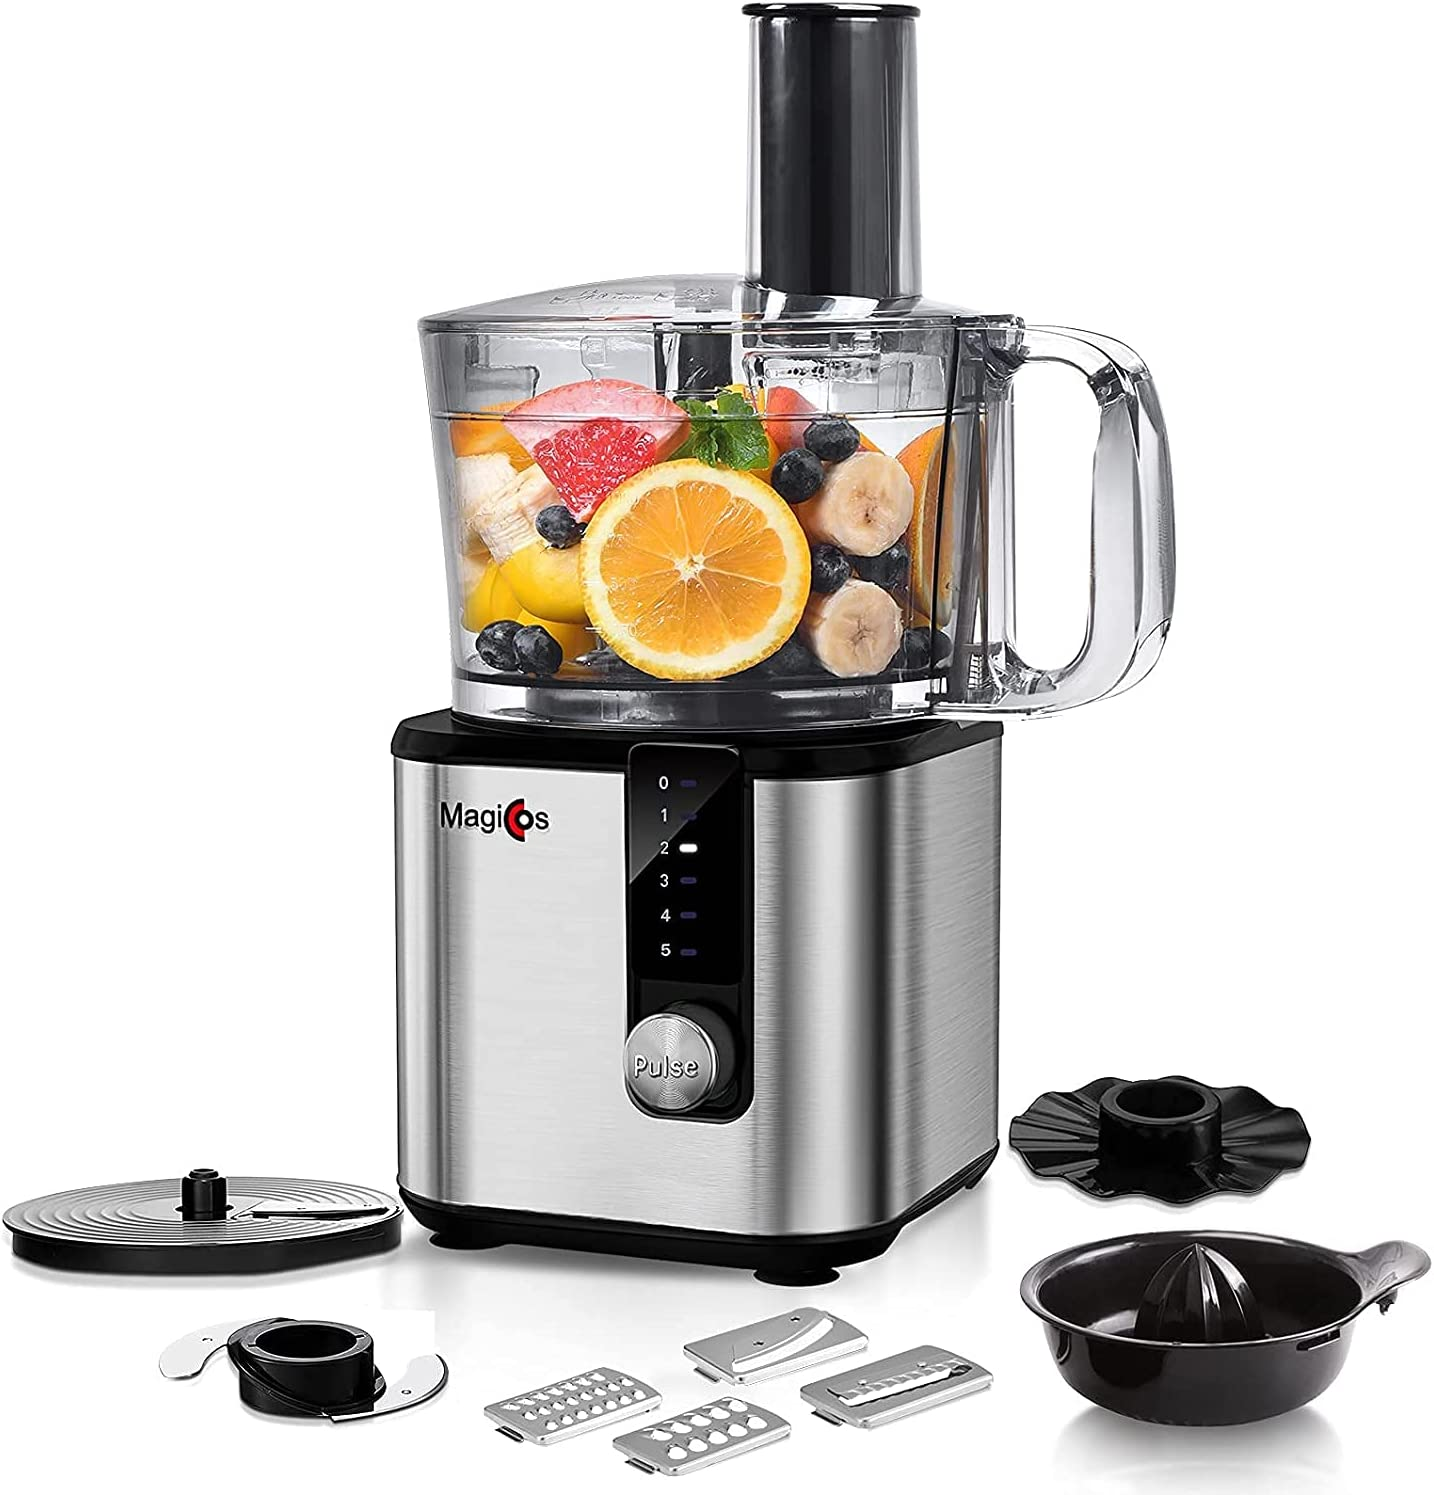 Food Processor- All stores are sold MAGICCOS 7-in-1 Chopper Vegetable Product Processor